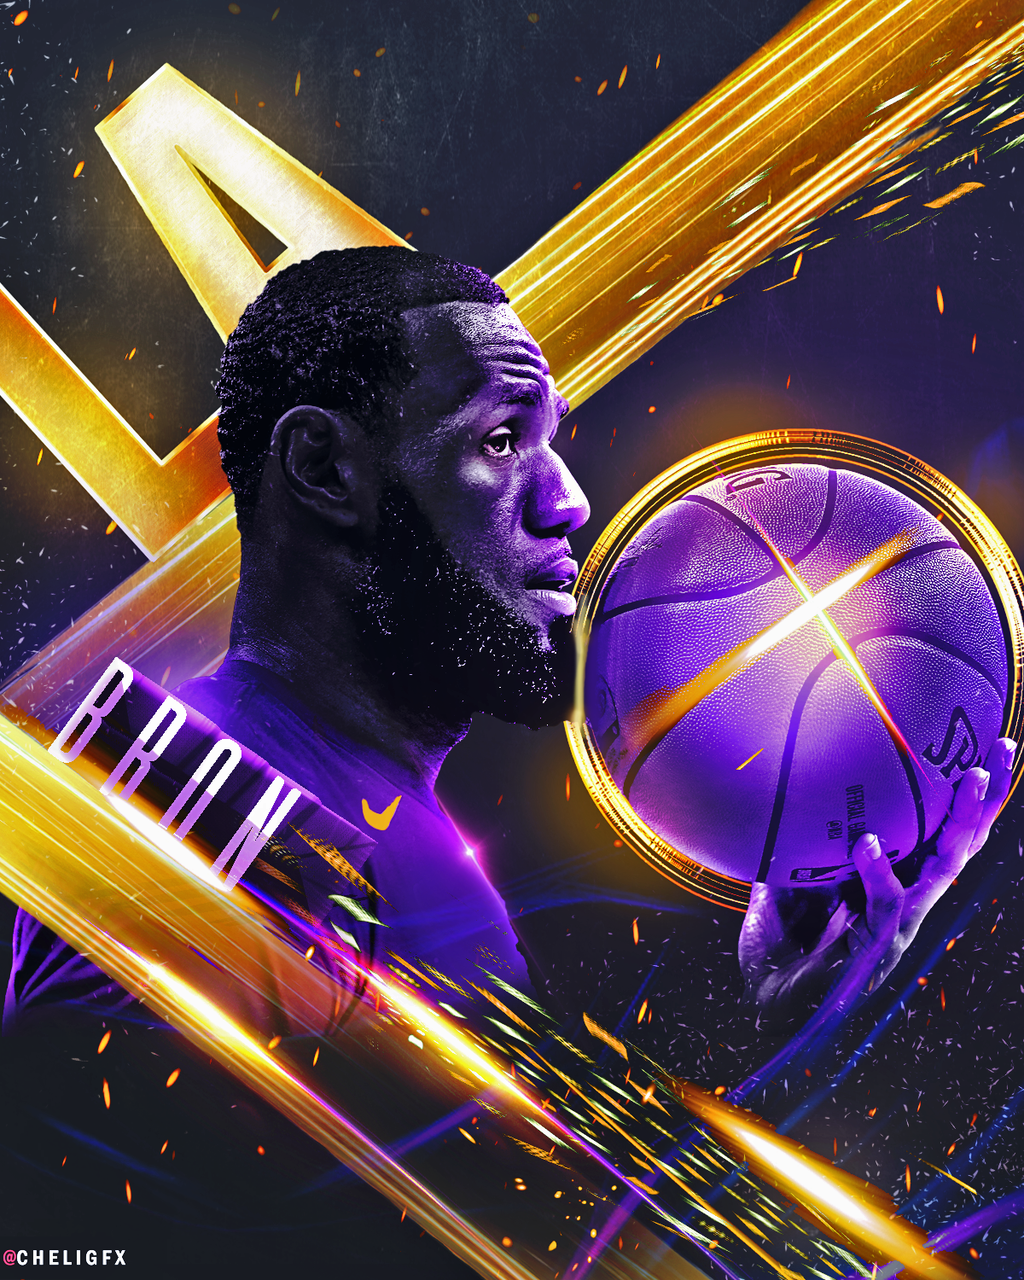 Lebron James Wallpaper Iphone: LeBron Lakers Wallpapers